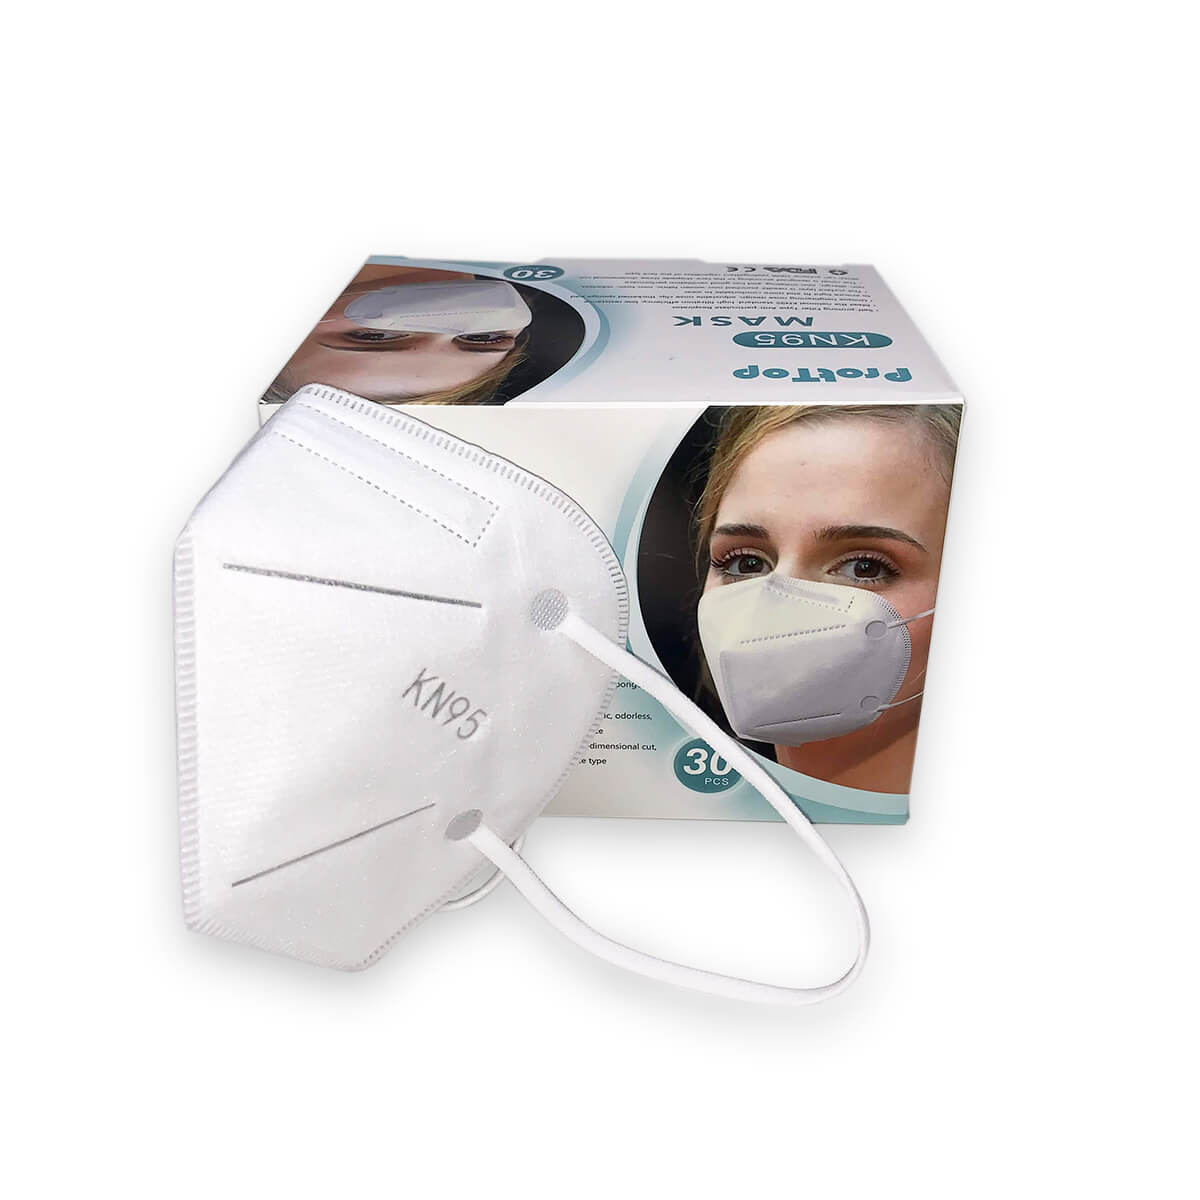 KN95 Face Mask ProtTop 30 Units